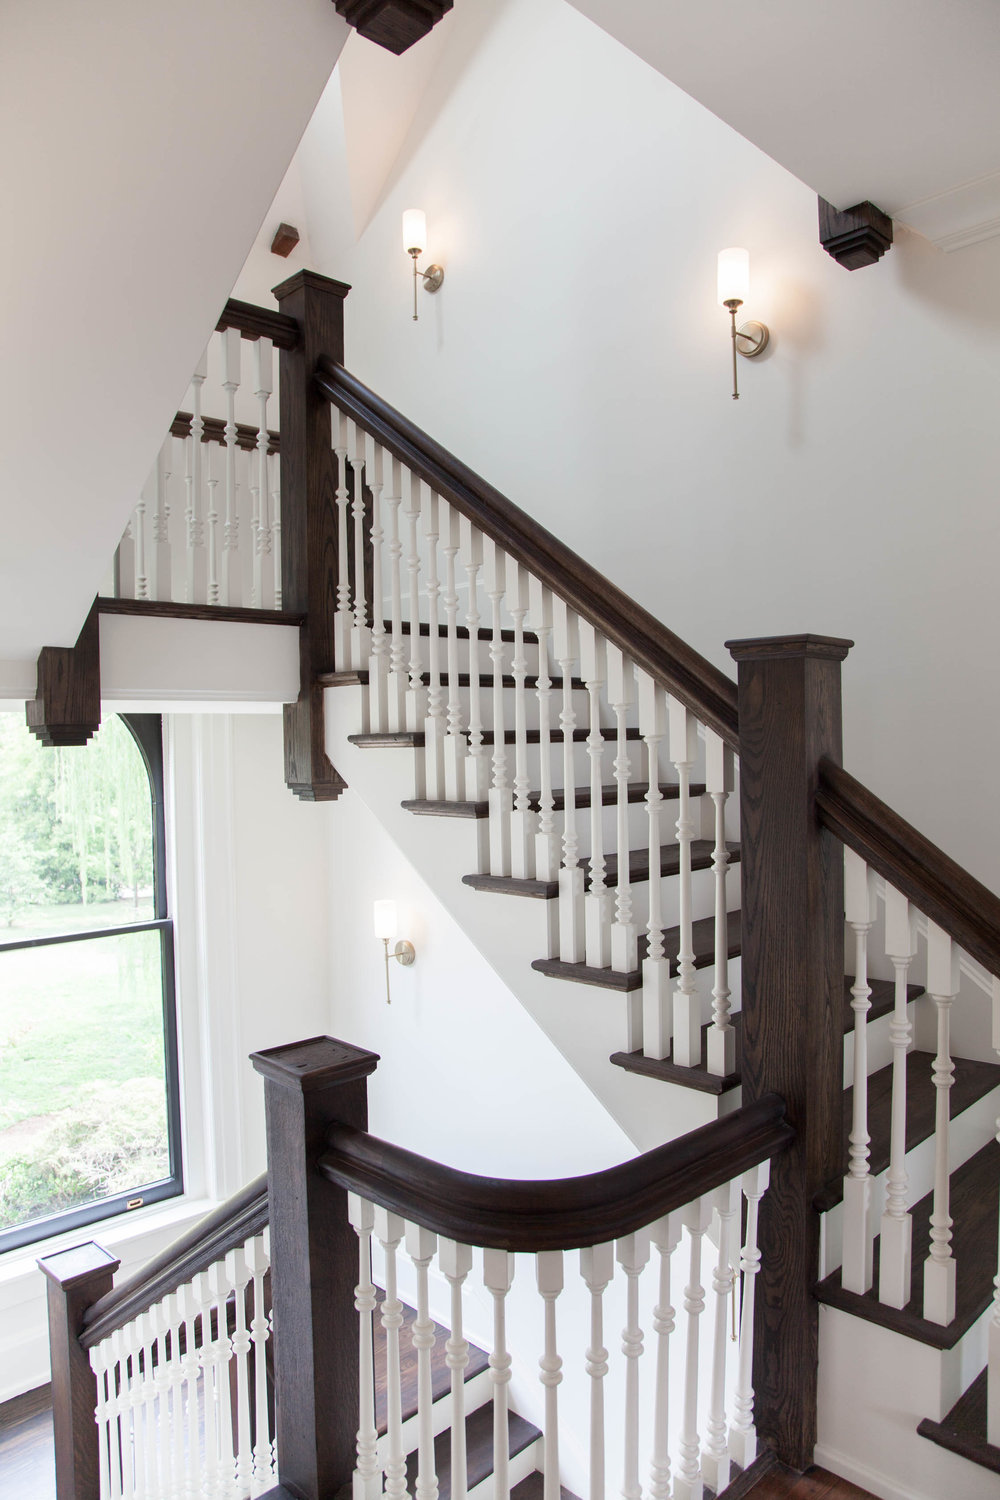 Three-story staircase with perfectly restored bannisters.